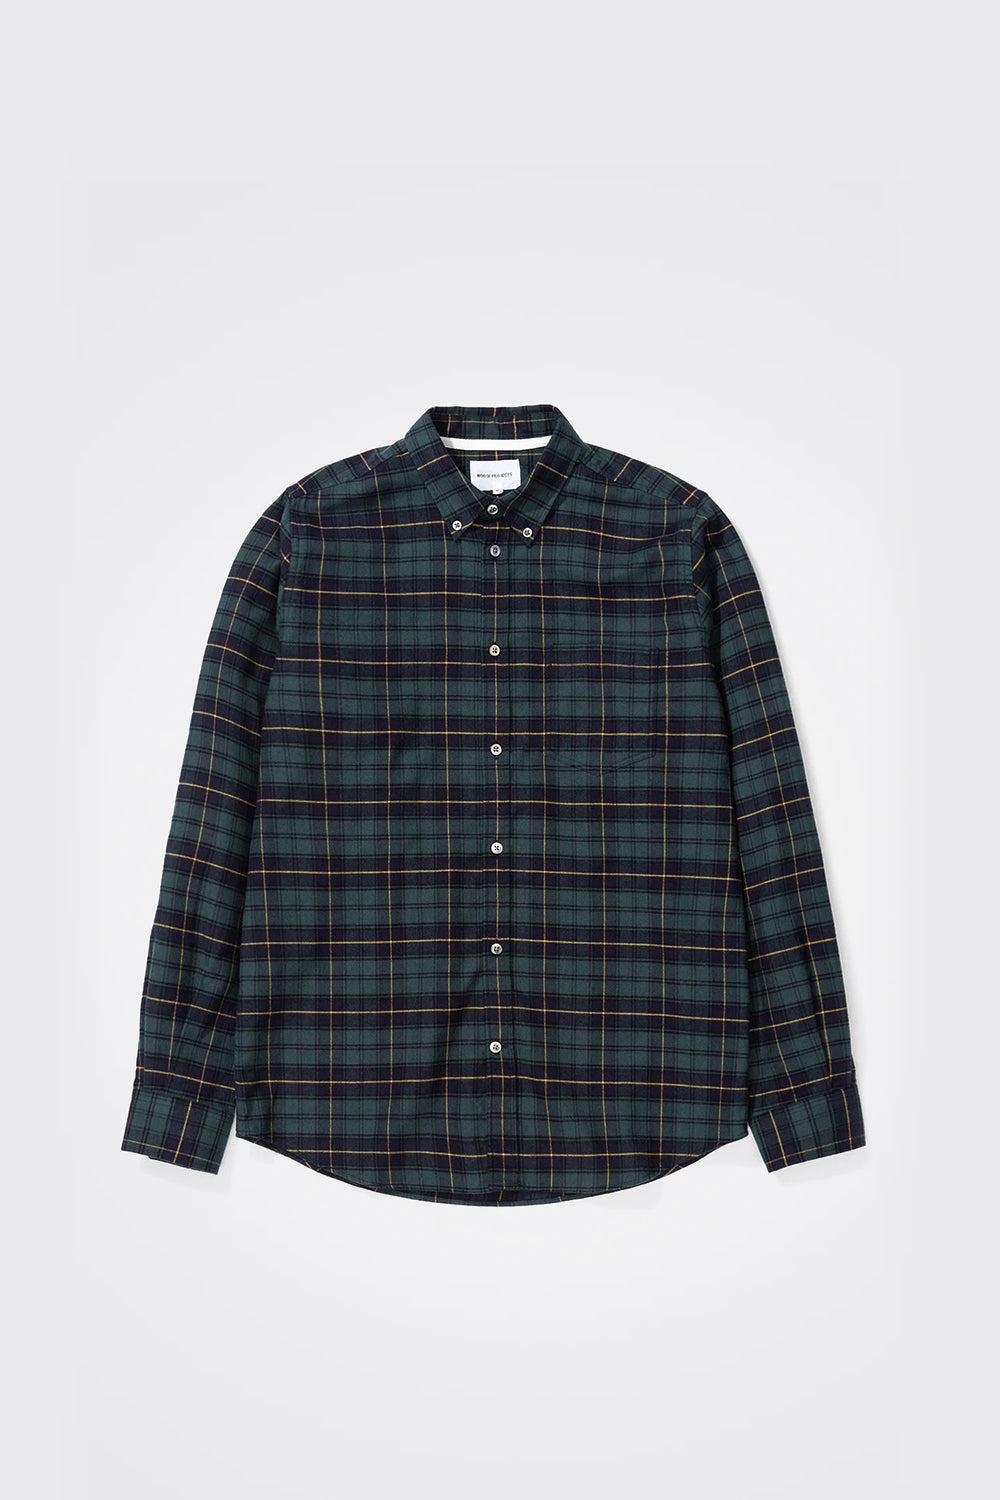 Anton Brushed Flannel Check - Black Watch Check